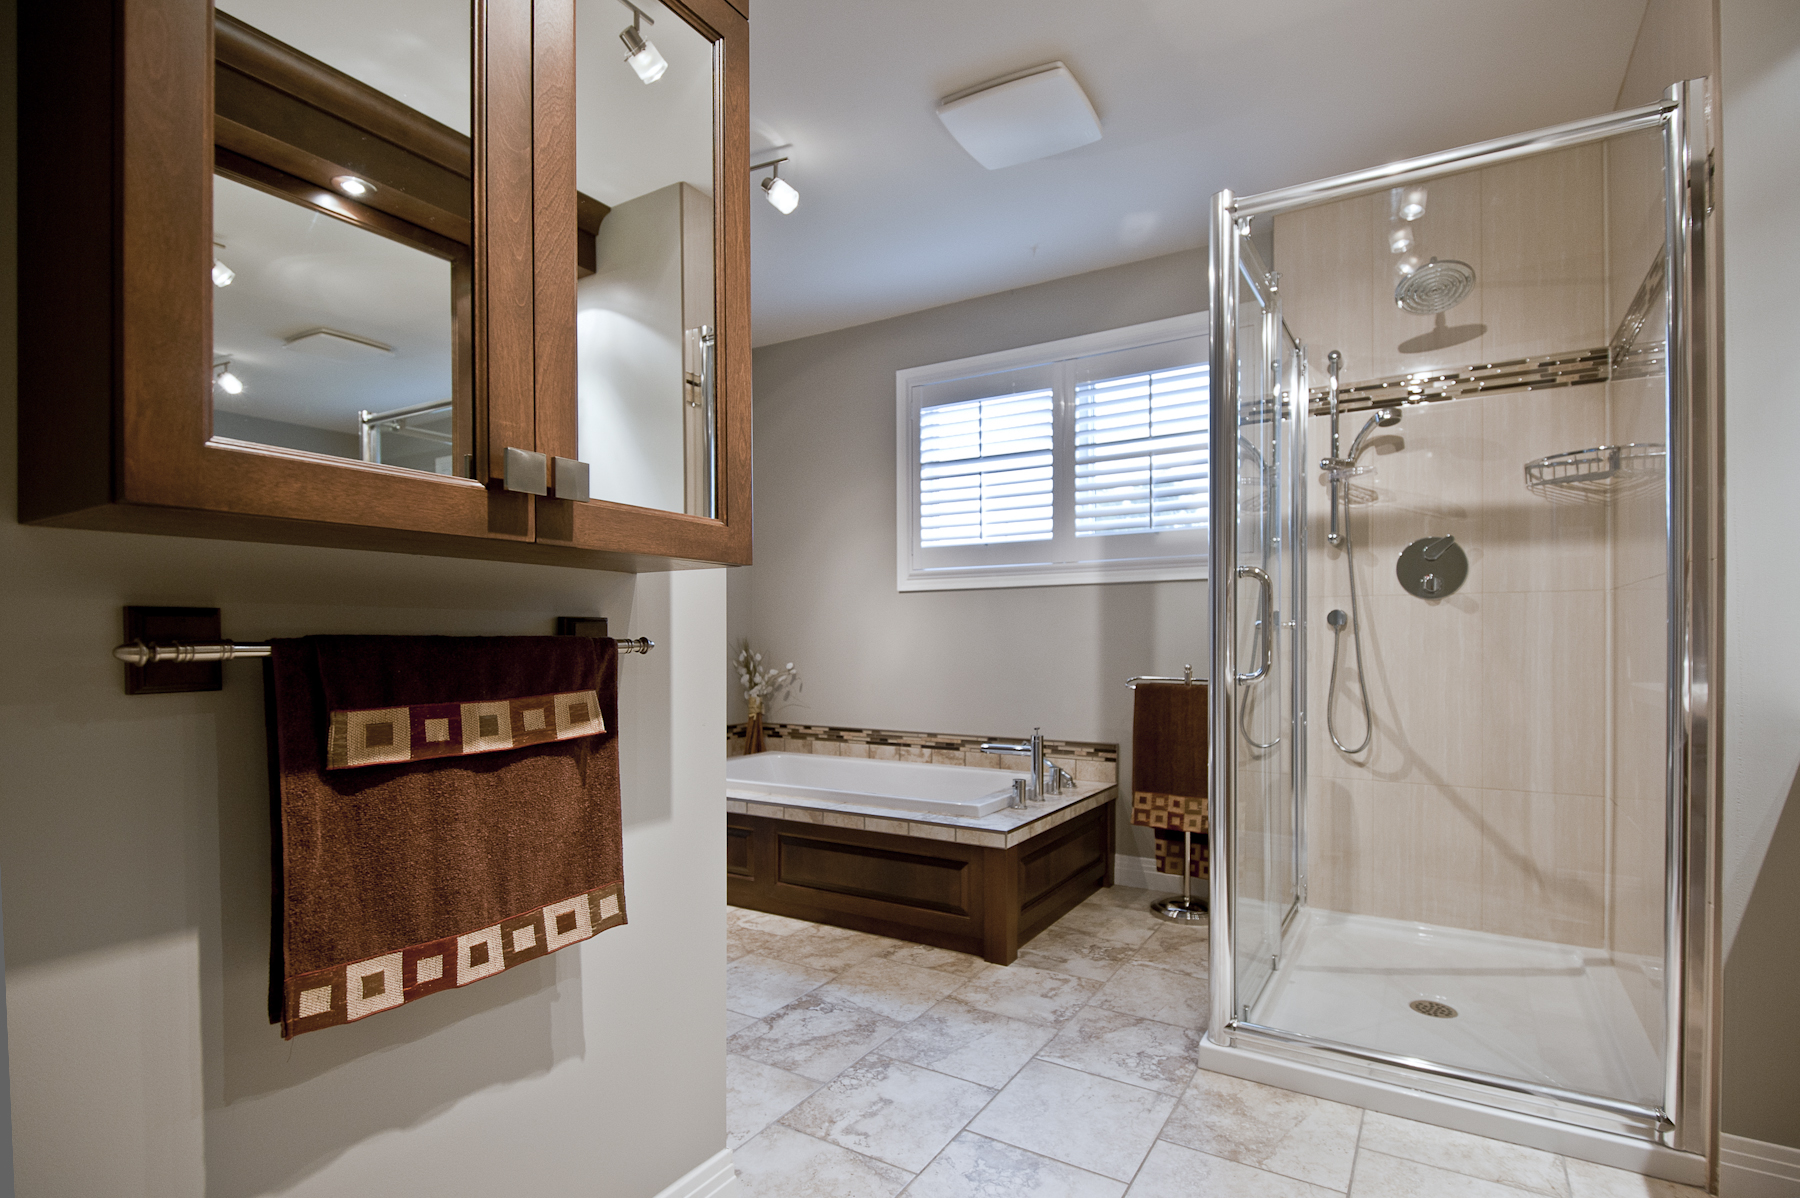 Eclectic Design Ideas For Your Bathroom Designer Mag - Eclectic bathroom designs